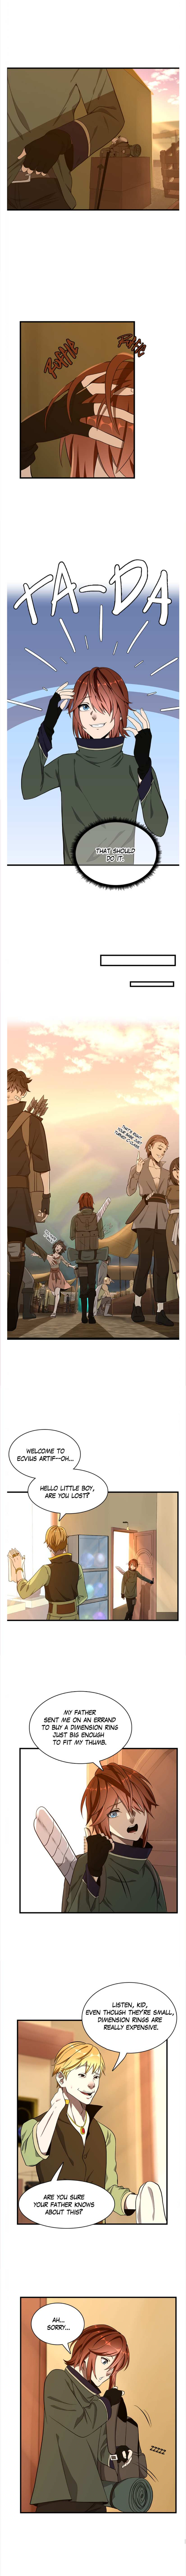 The Beginning After The End, Chapter 74 image 008